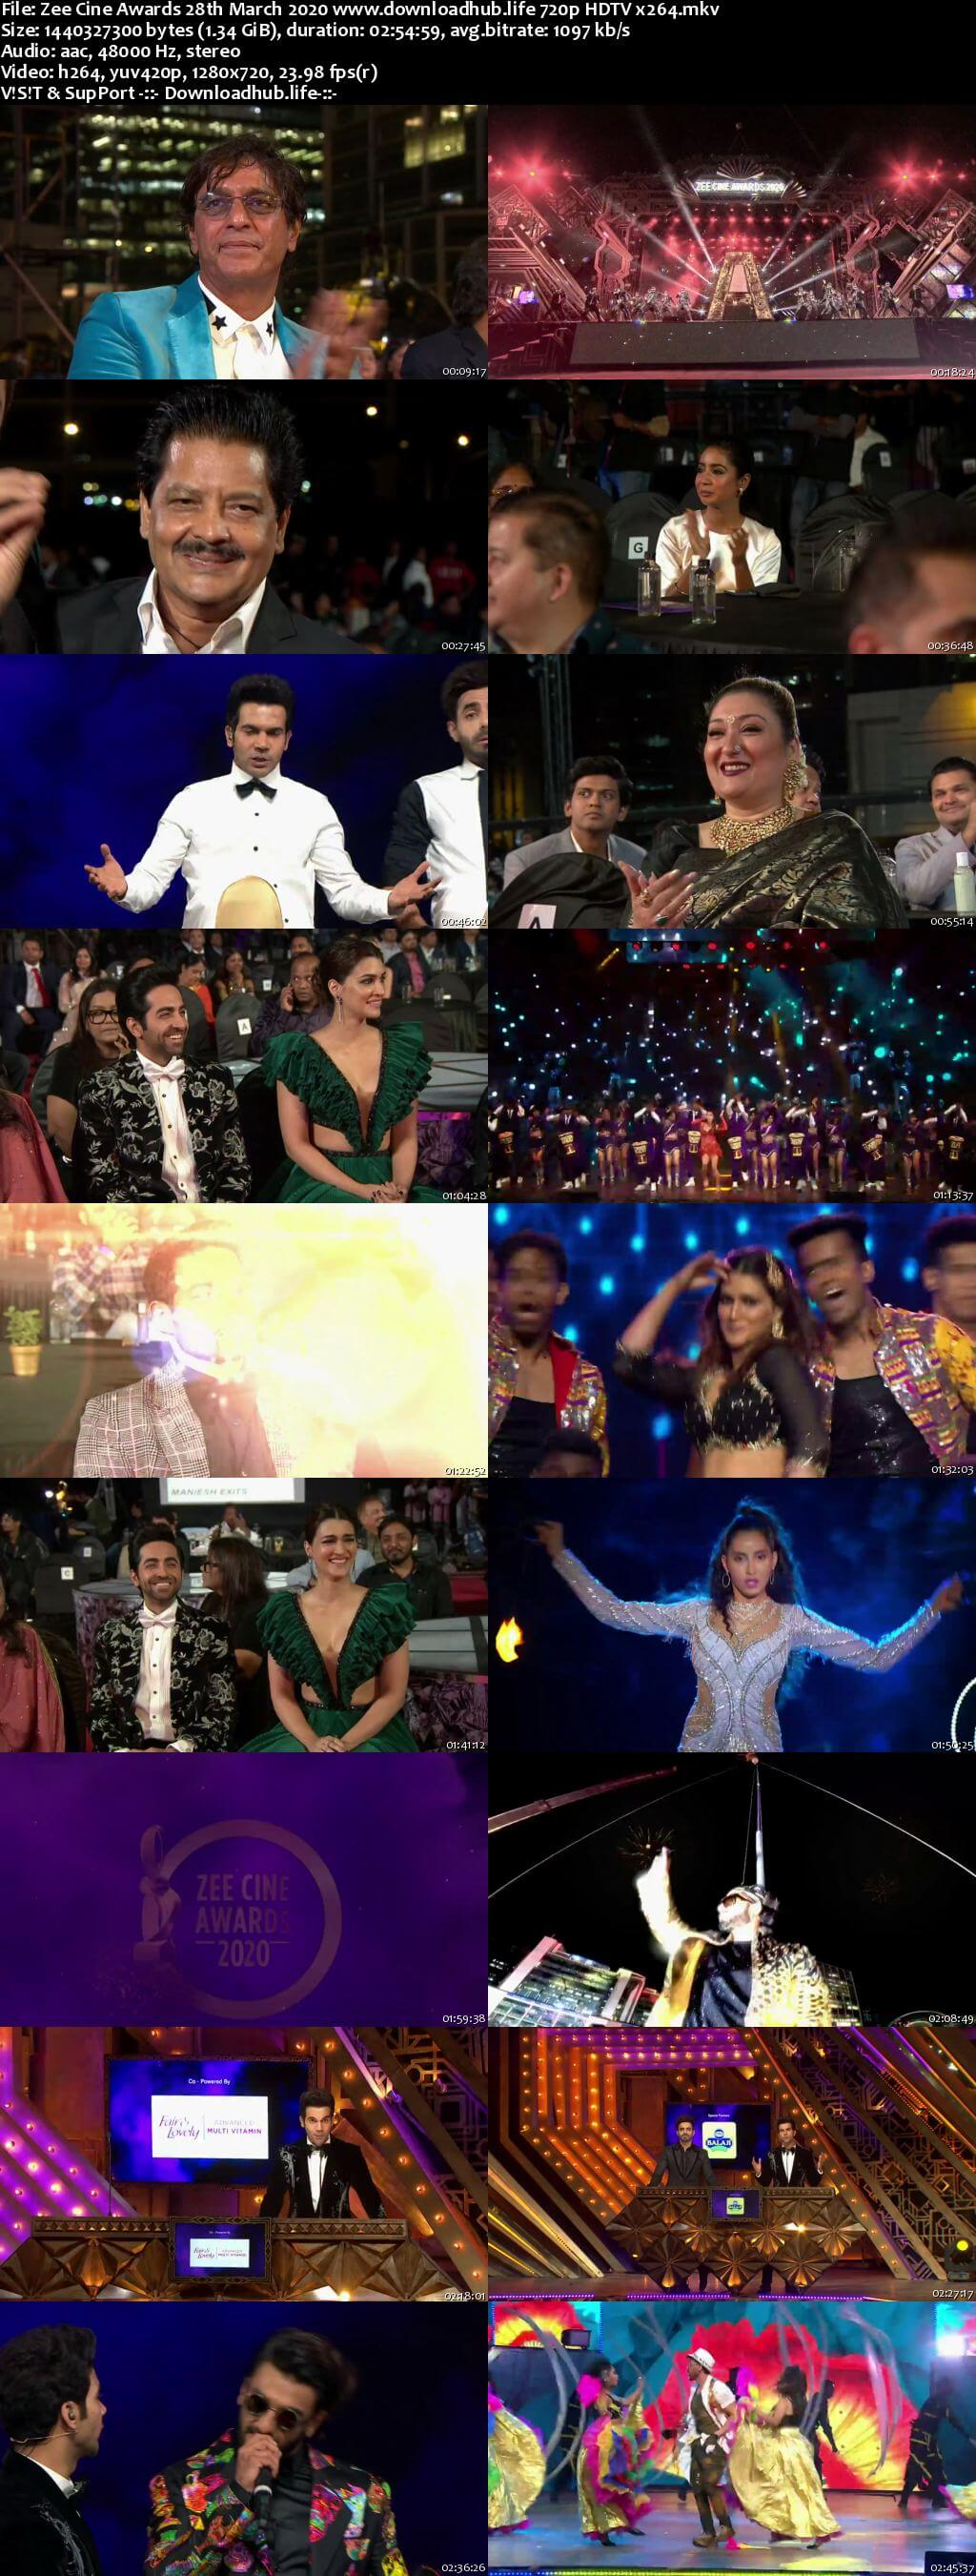 Zee Cine Awards 28th March 2020 720p HDTV x264